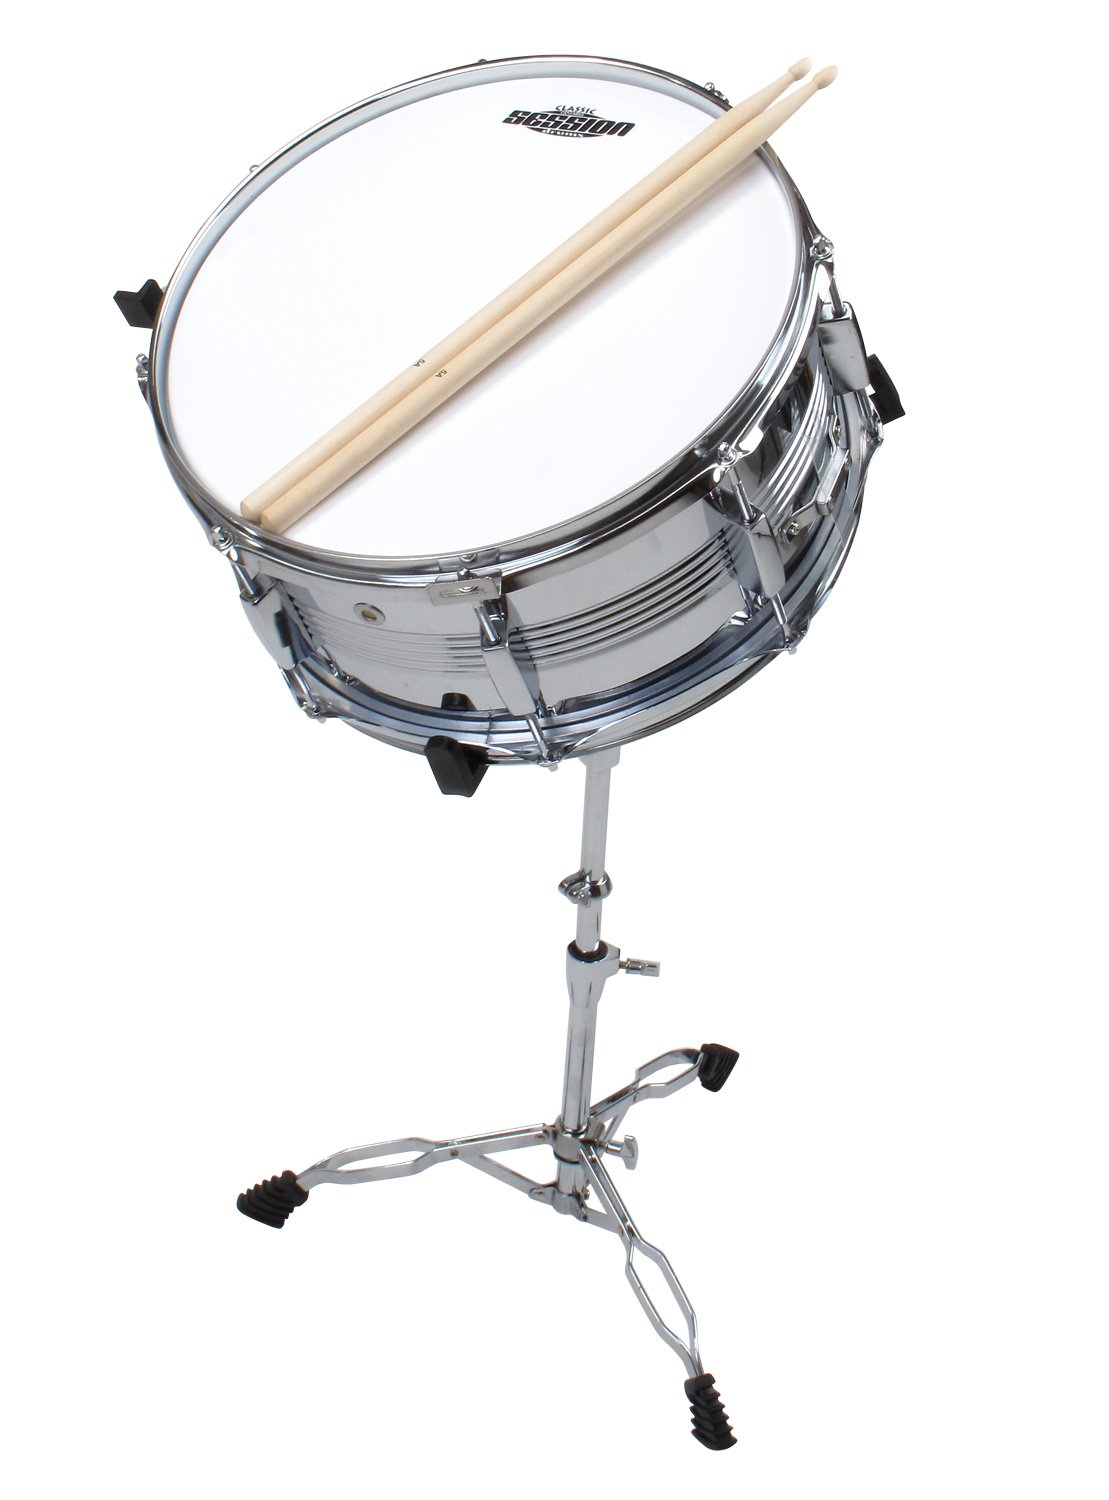 XDrum Snare Drum Starter Set by XDrum (Image #2)